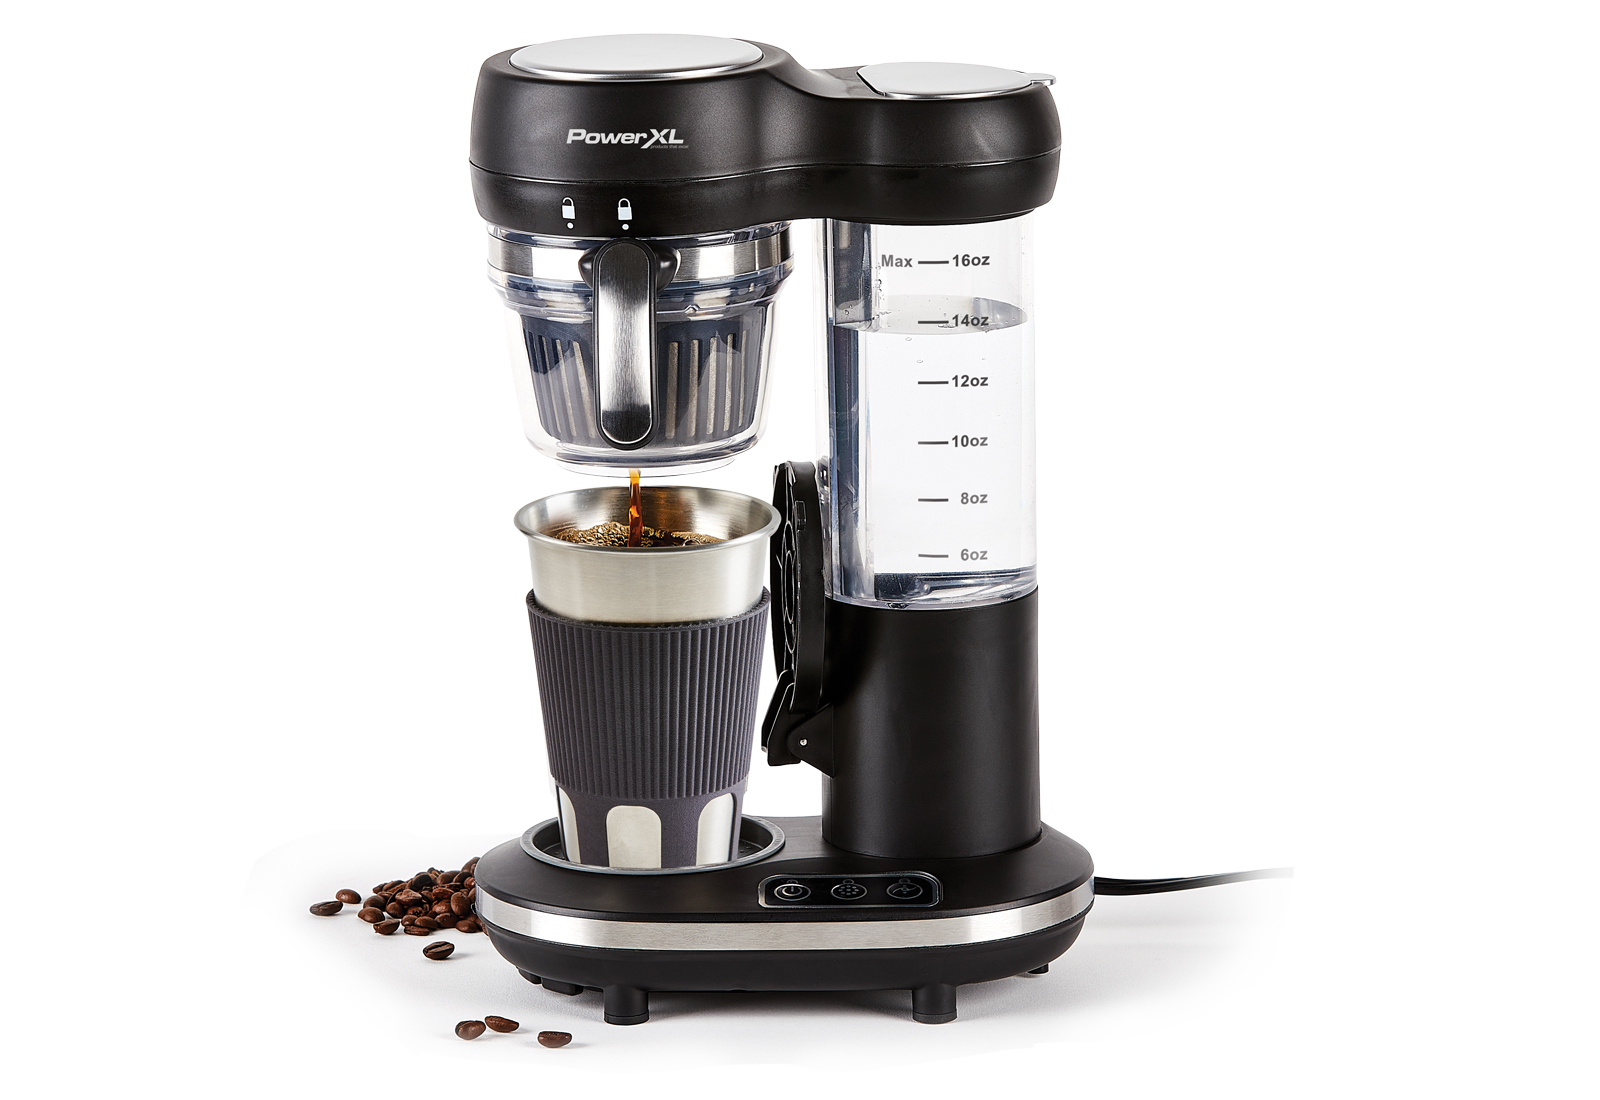 PowerXL Grind & Go Coffee Maker Product Image